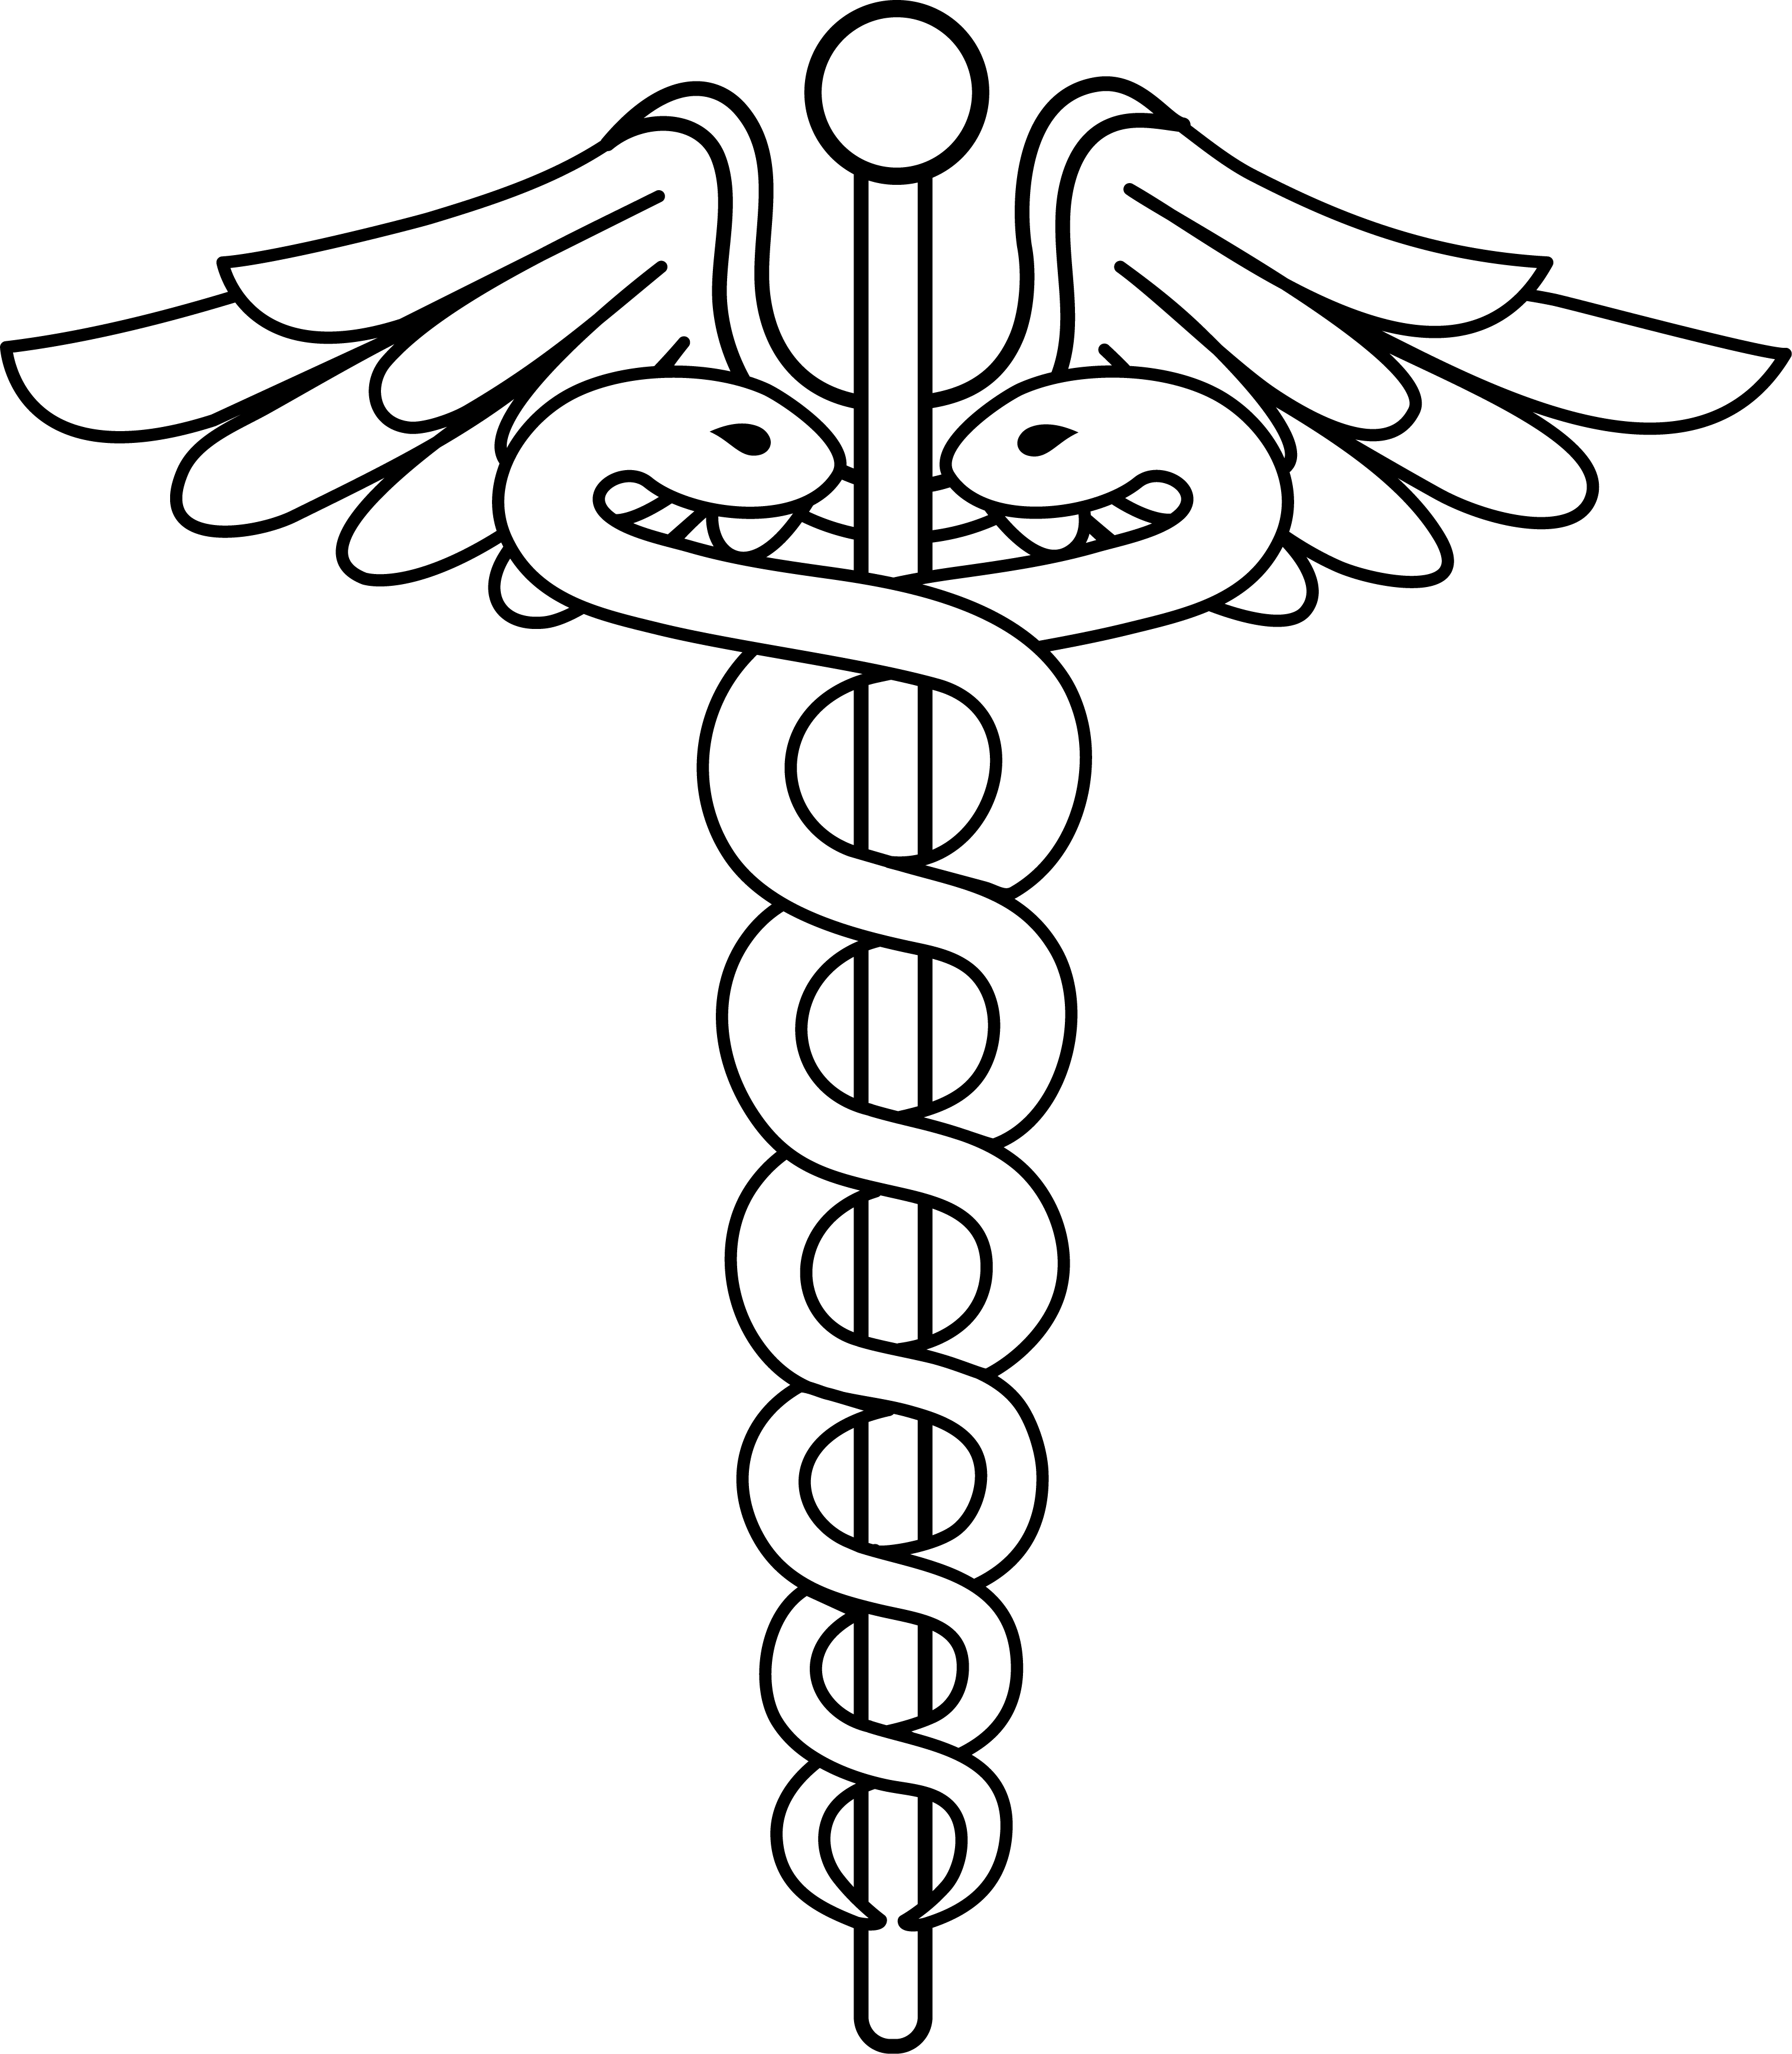 Free dental caduceus download. Health clipart black and white